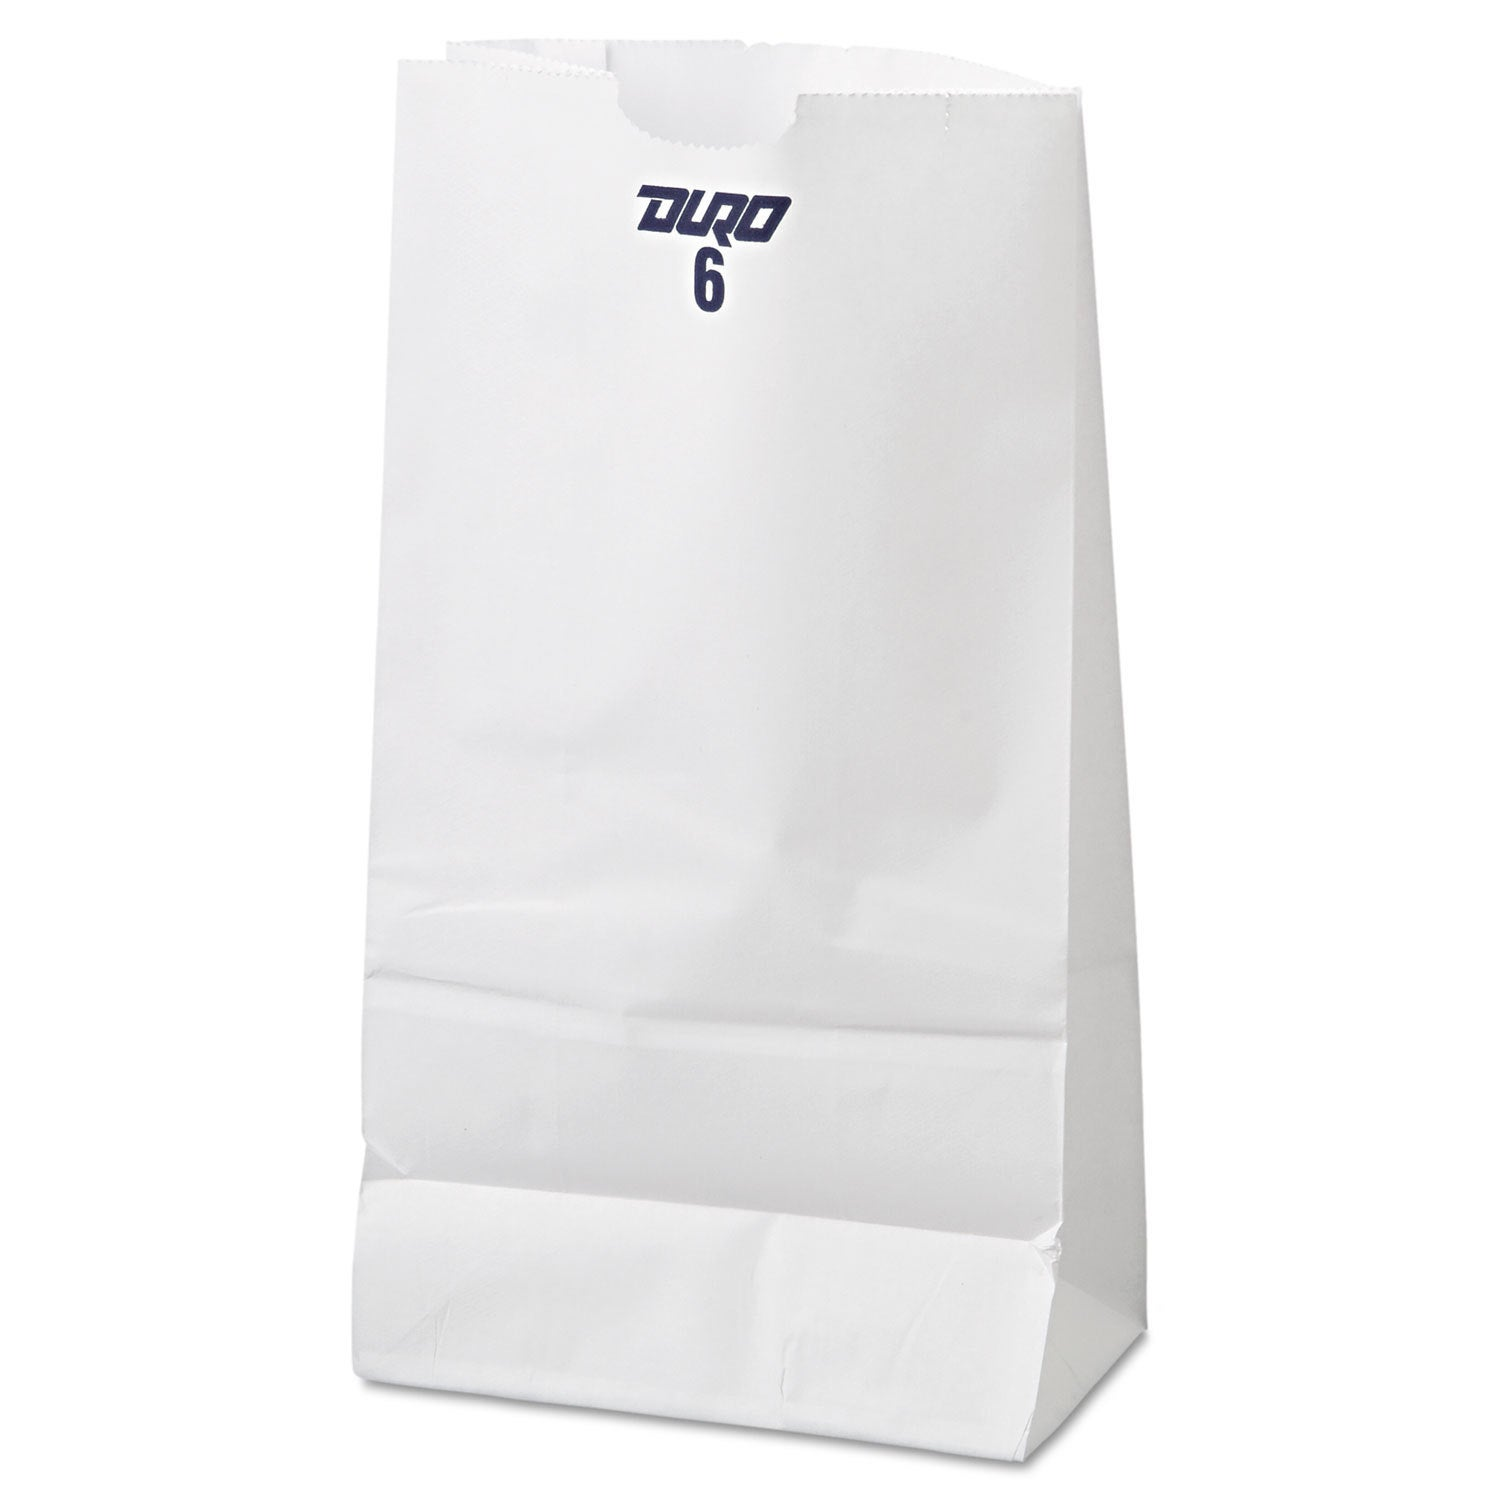 General 6 Paper Grocery Bag 35-pound White Standard 6 x 3...